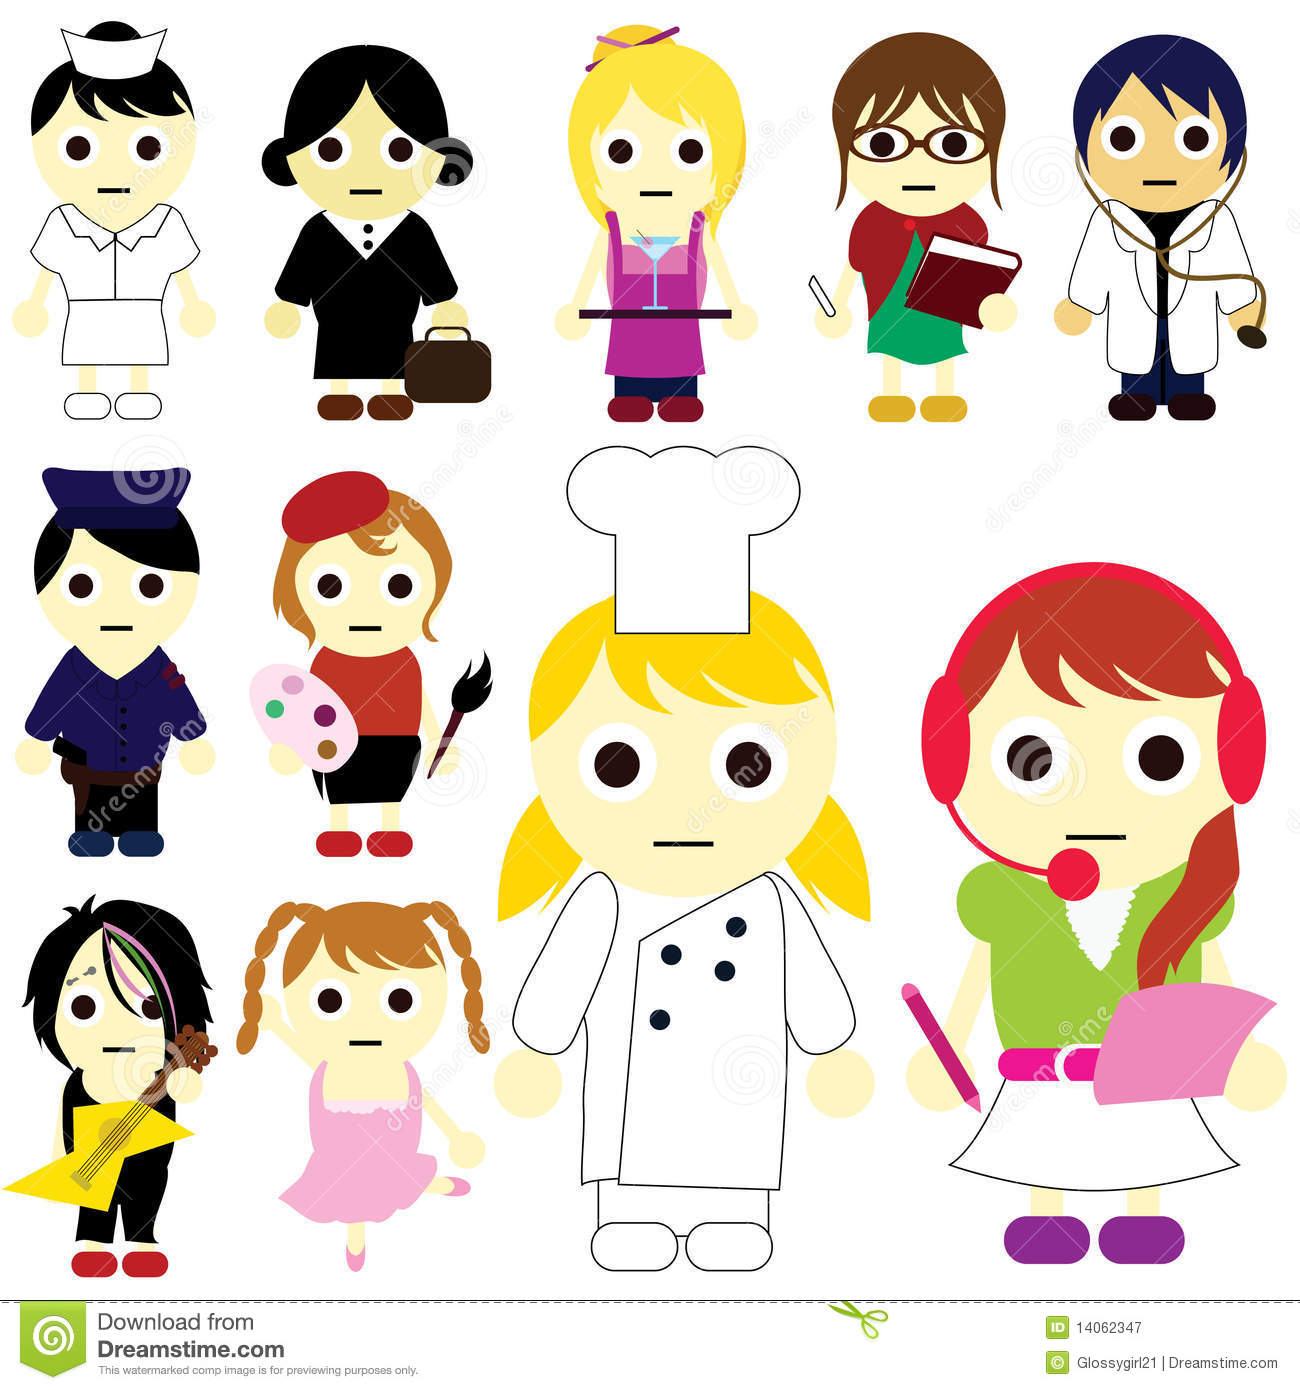 Careers clipart kid. Career pictures for kids